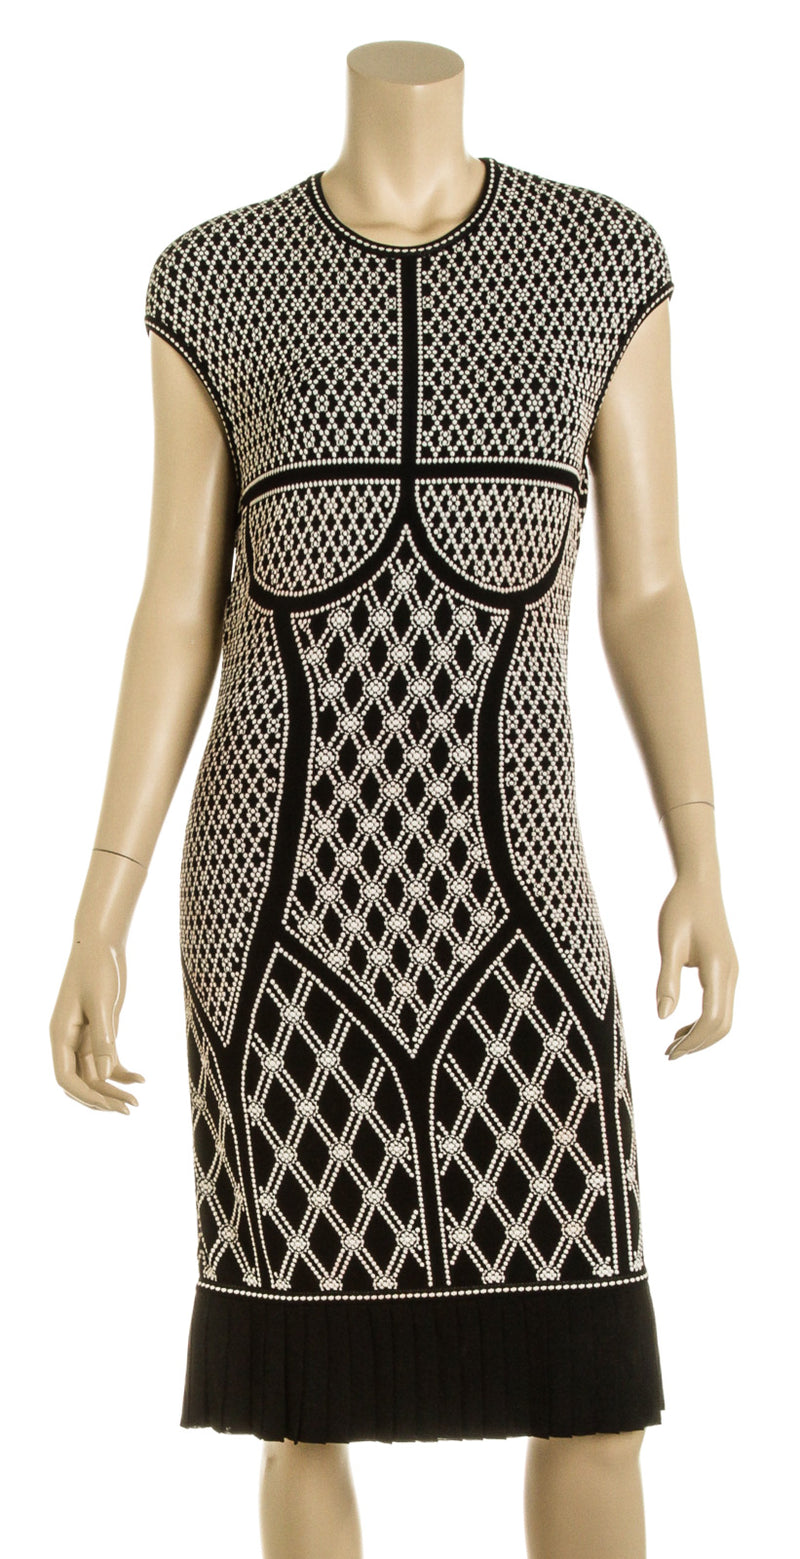 Alexander McQueen Black and White Knit Dress (Size M)